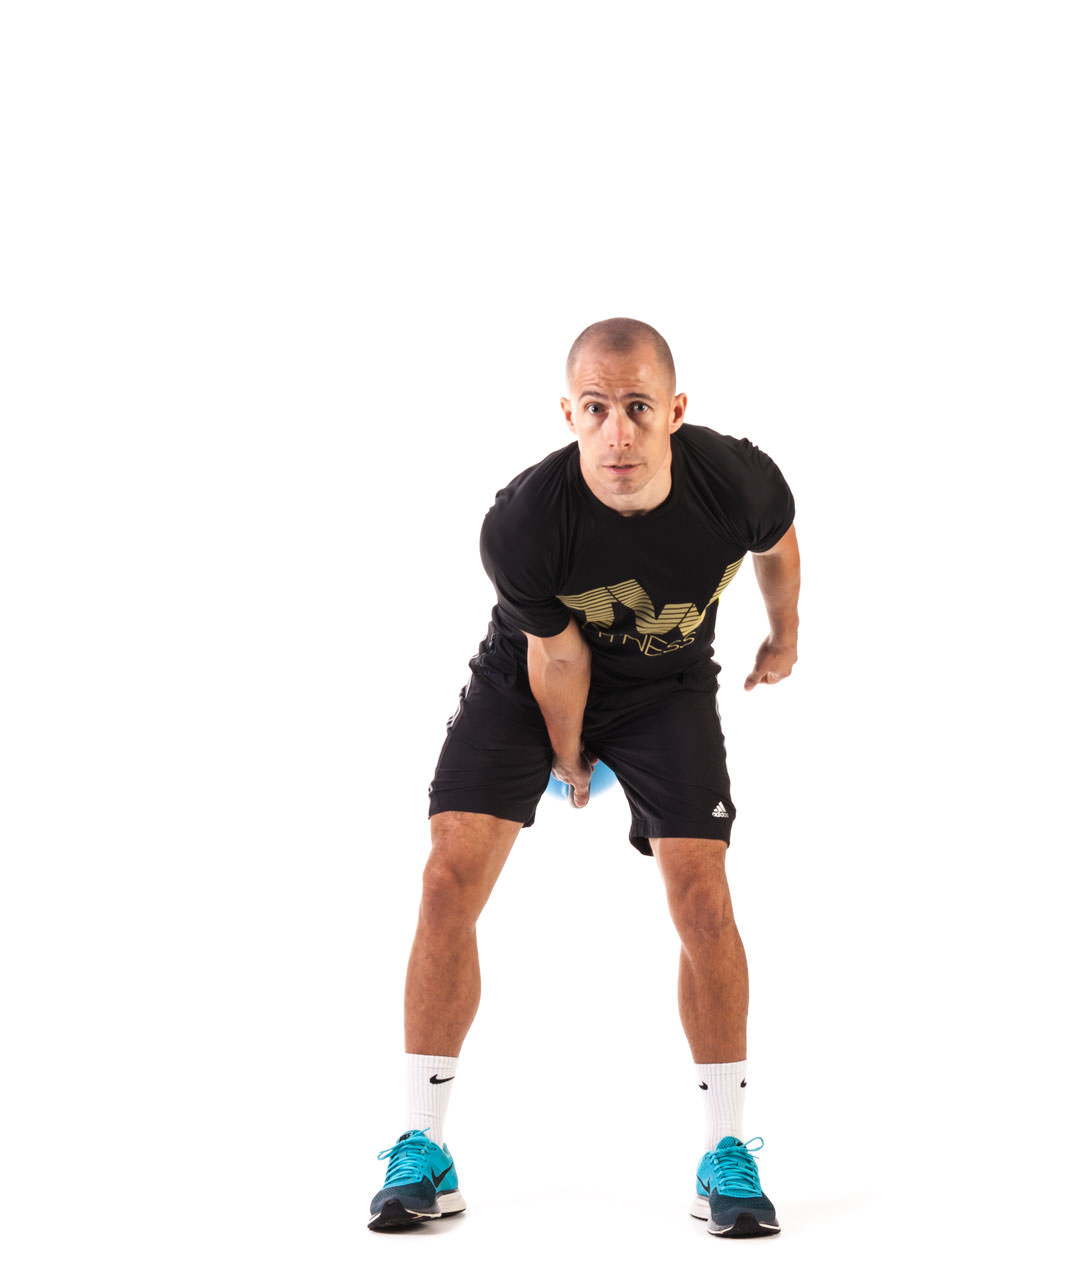 Alternating Kettlebell Swing frame #2